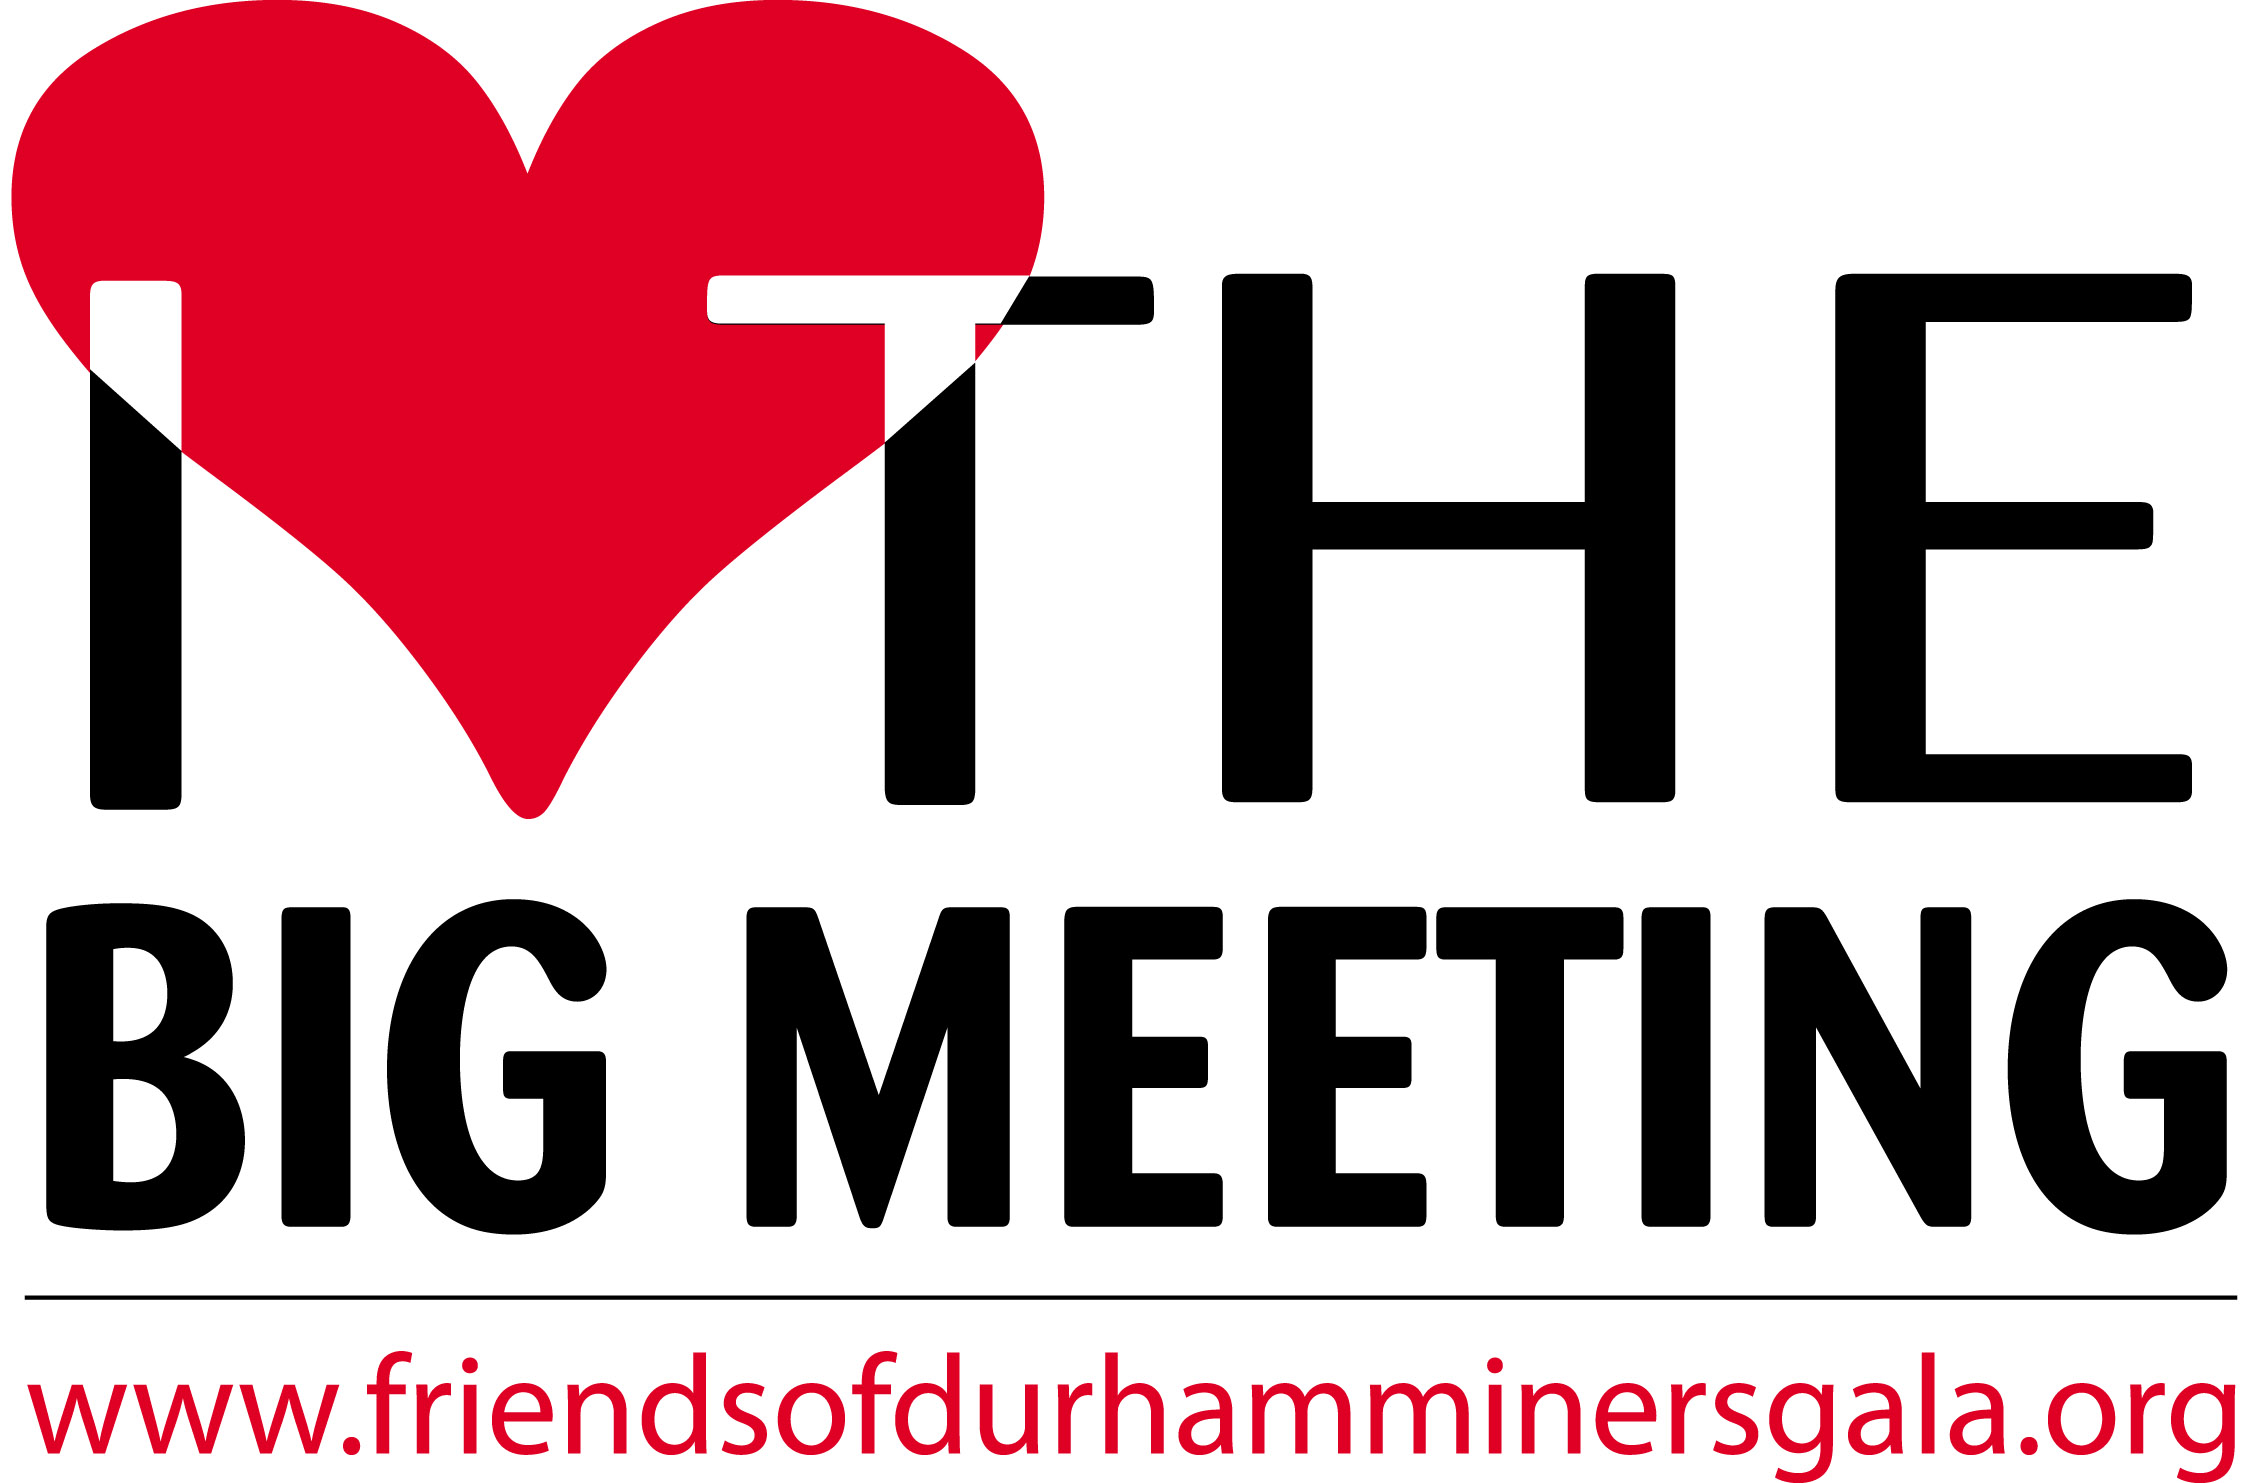 Big_Meeting_Logo.jpg